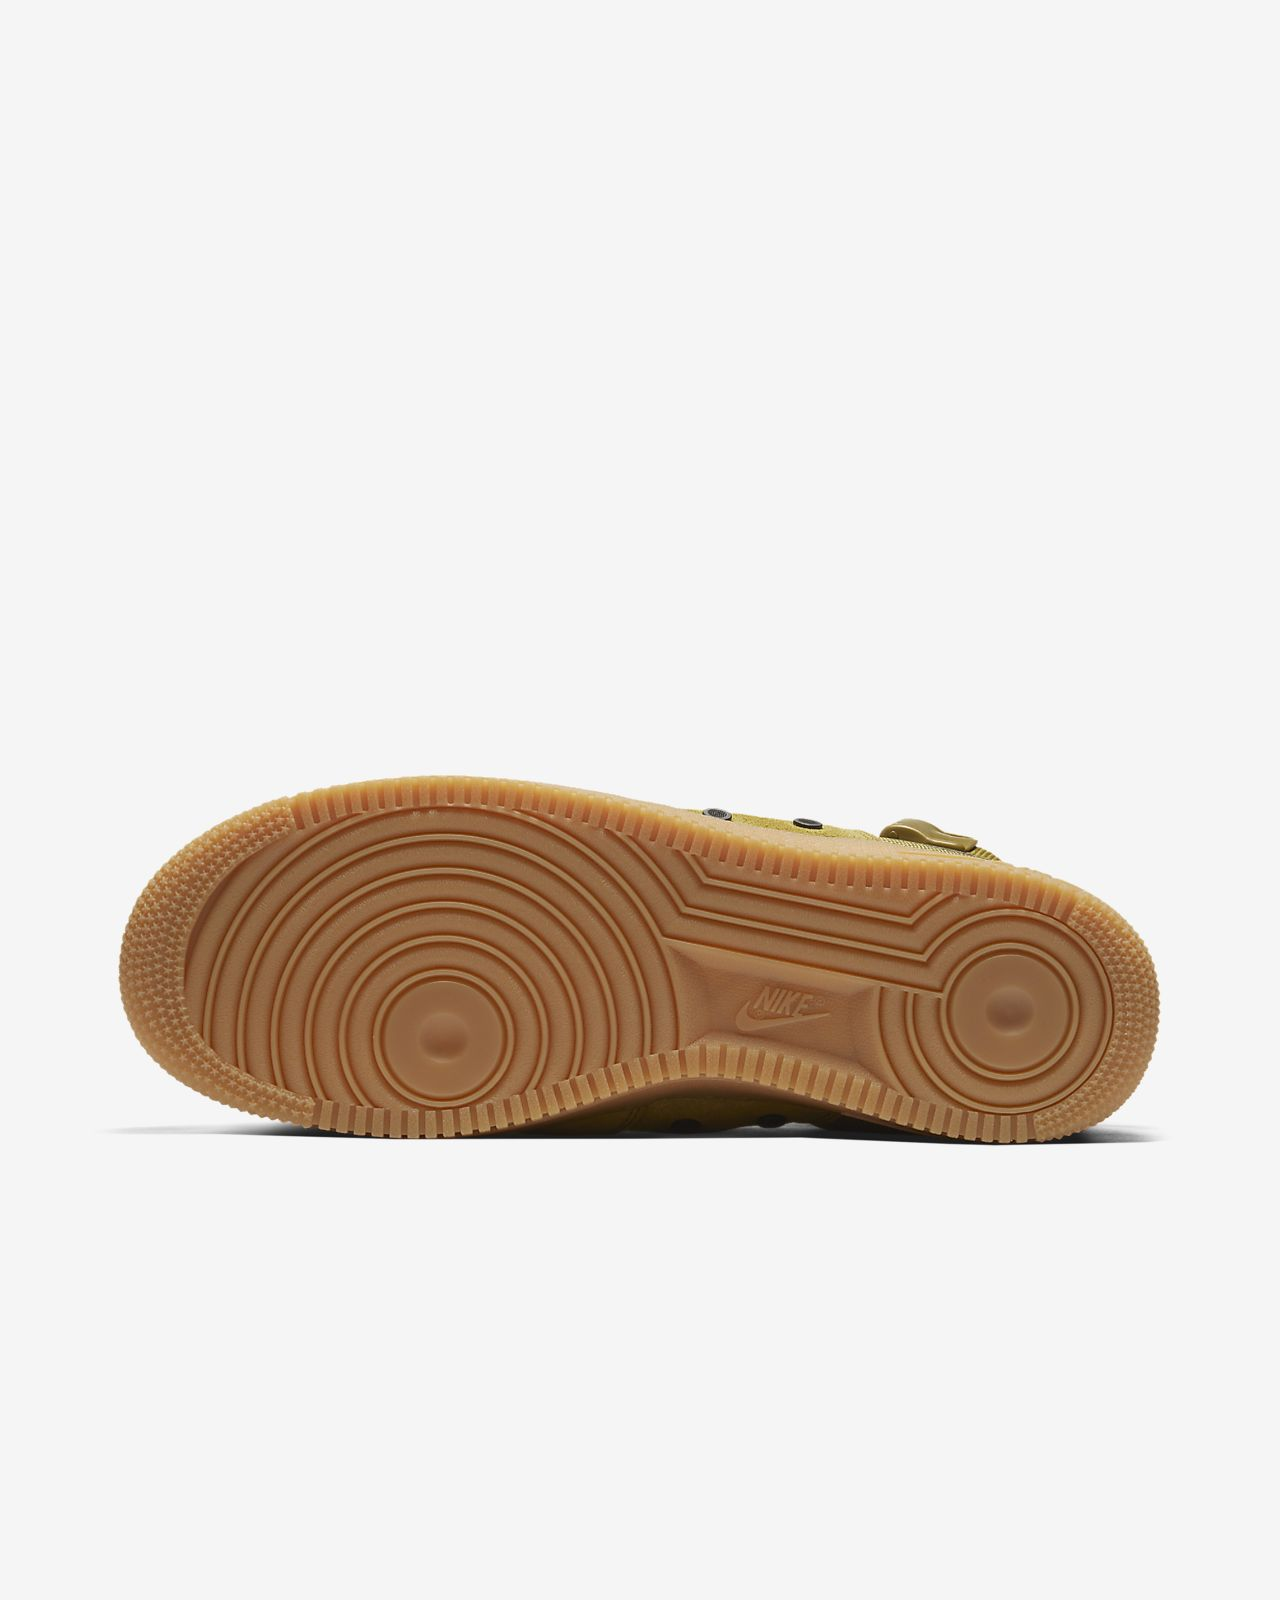 1 Nike Sf HommeCh Pour Mid Force Air Chaussure T3uFKcl1J